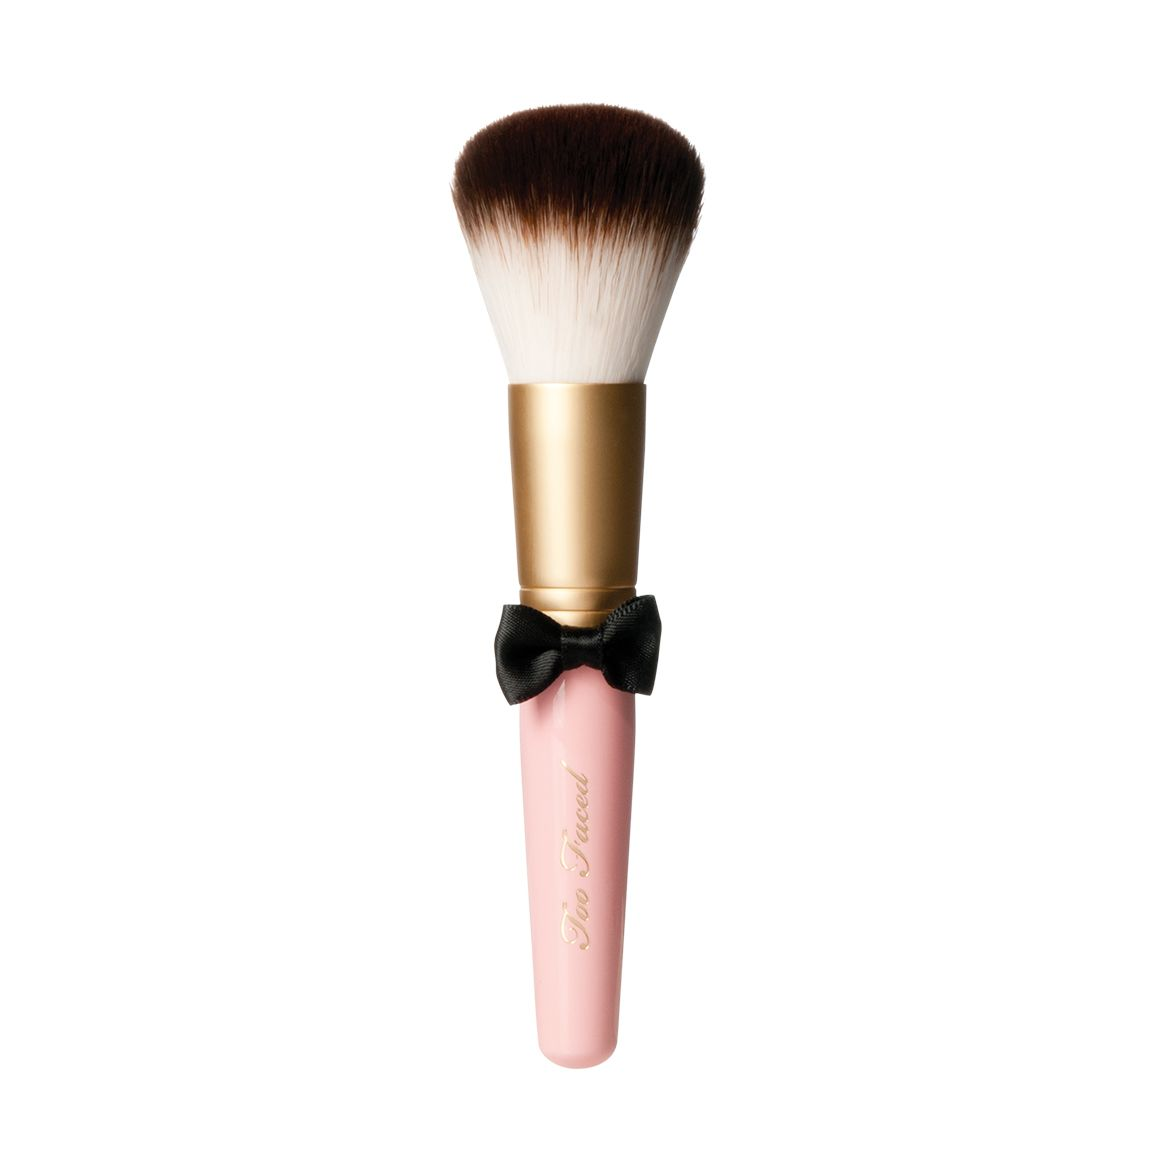 too faced kabuki brush. powder pouf brush - too faced kabuki